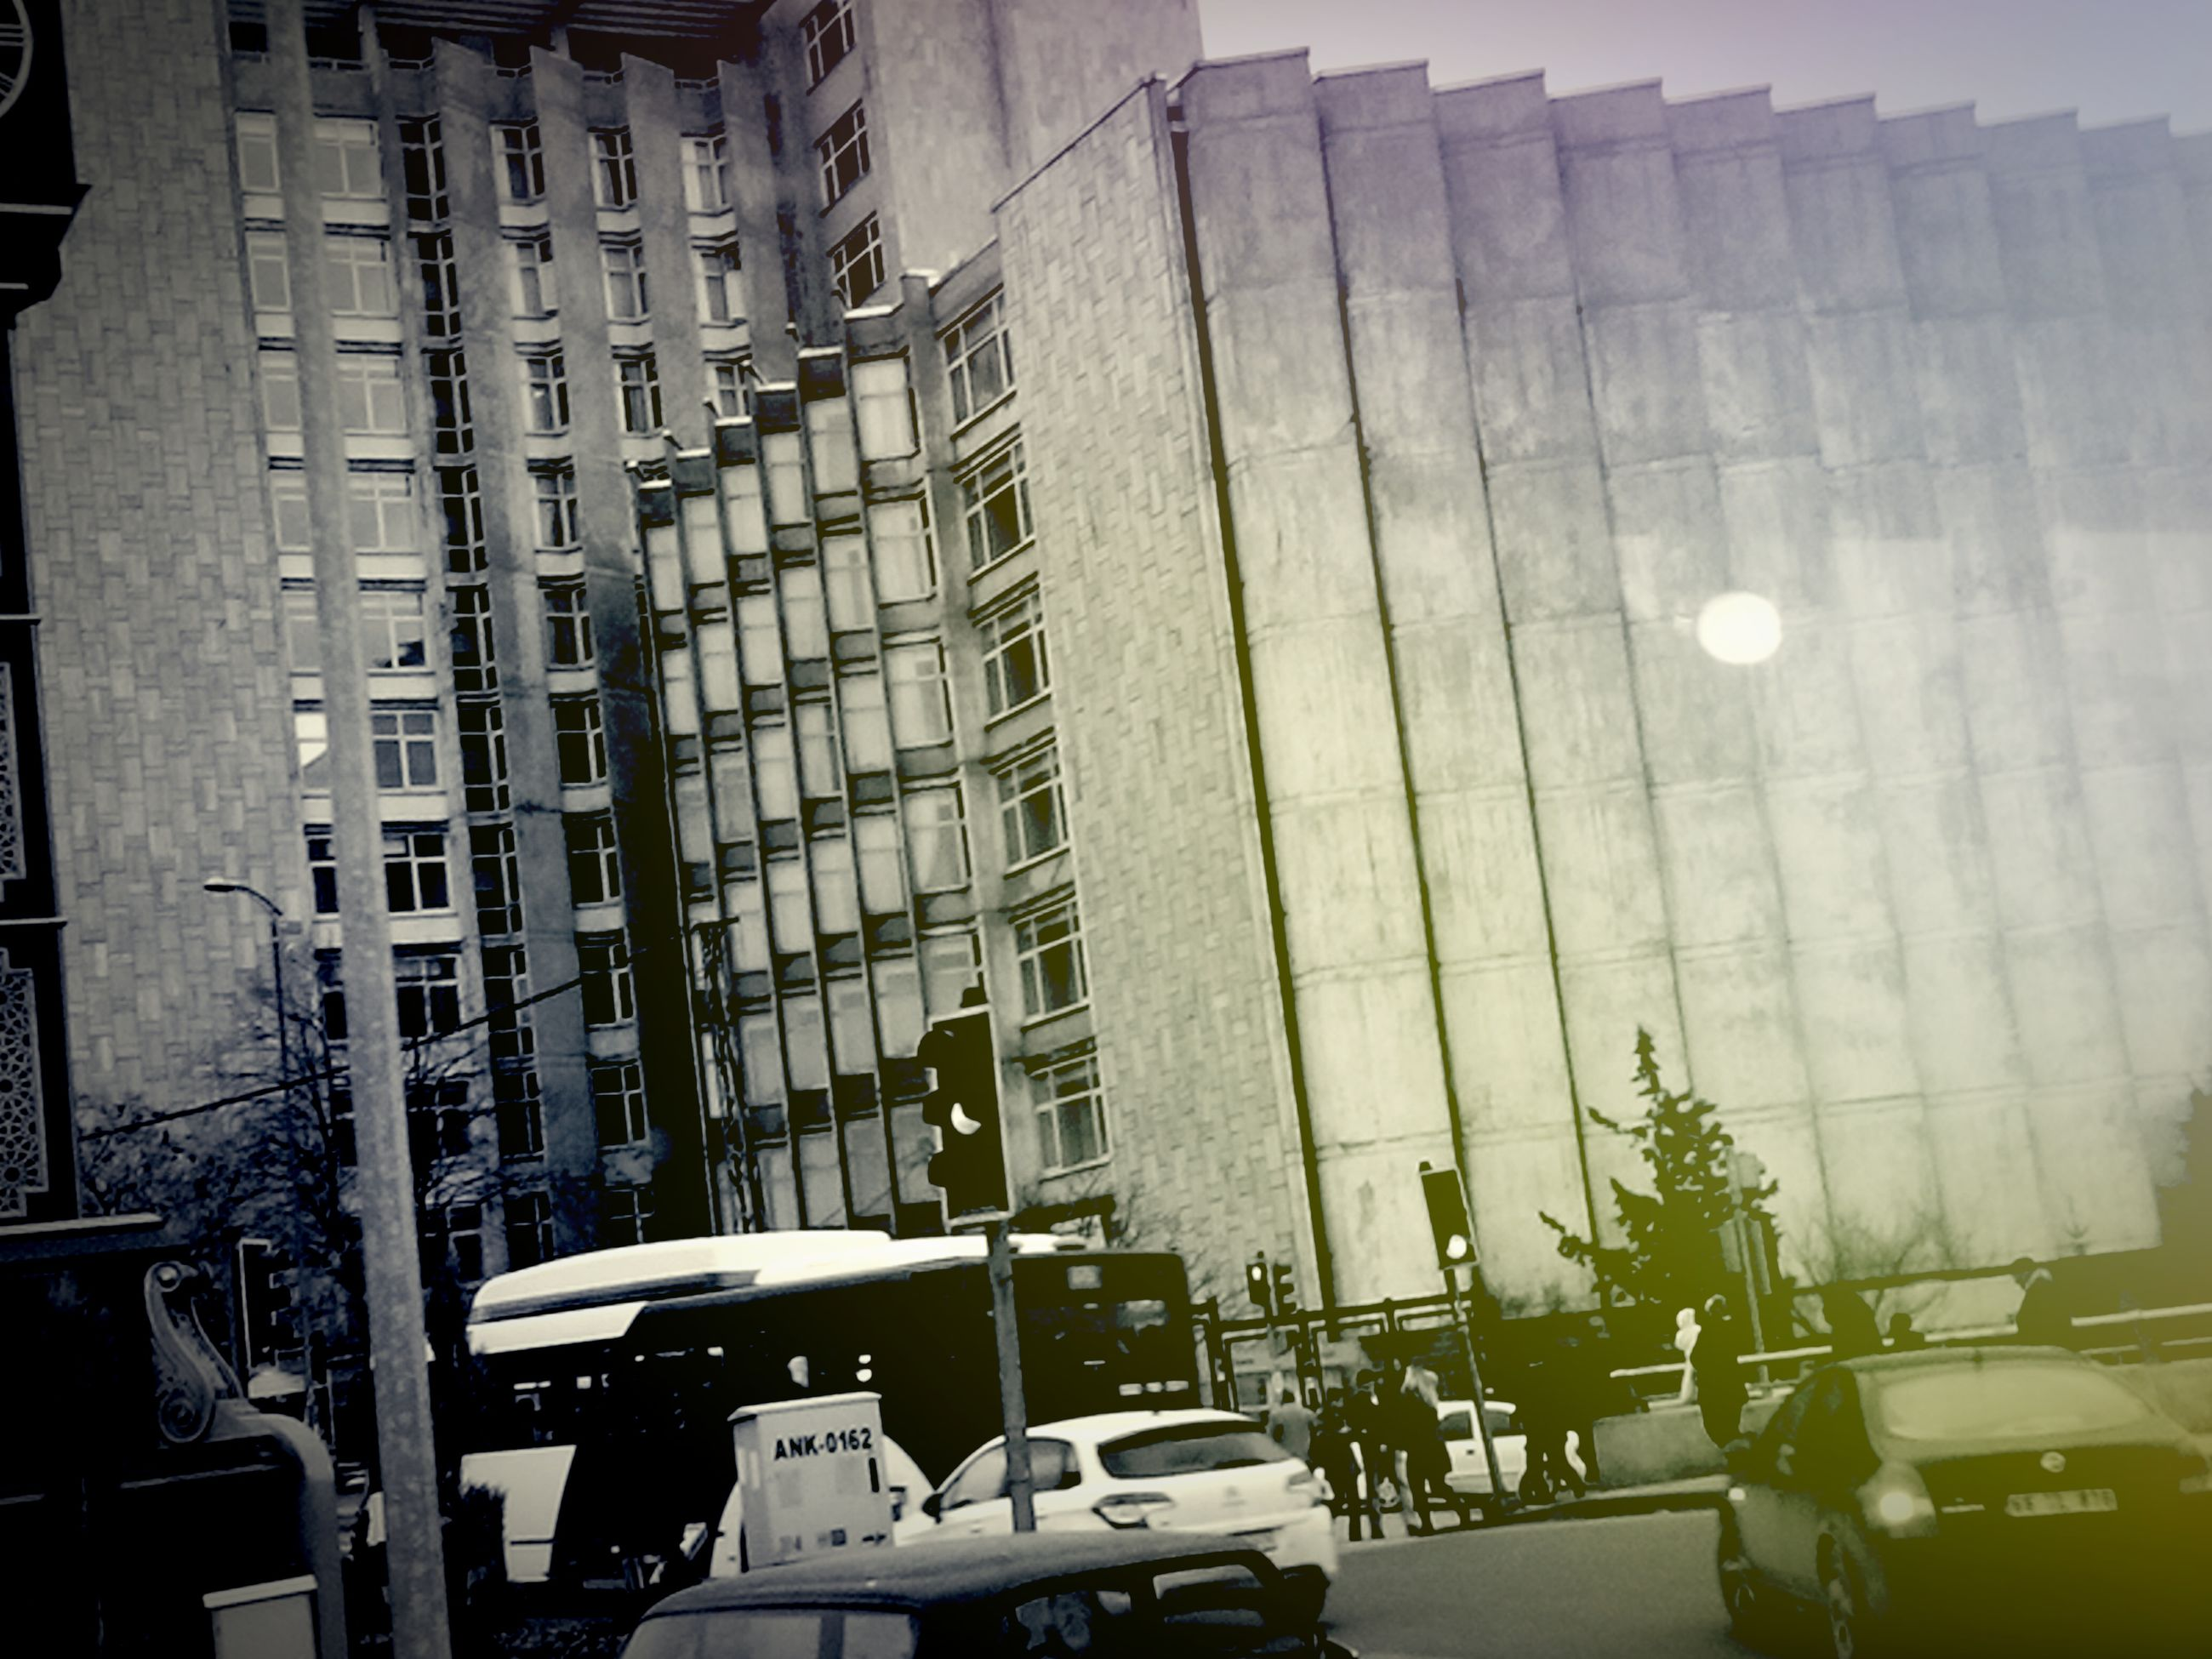 building exterior, architecture, built structure, car, land vehicle, transportation, city, mode of transport, street, building, parking, residential building, sunlight, city life, day, city street, residential structure, window, stationary, modern